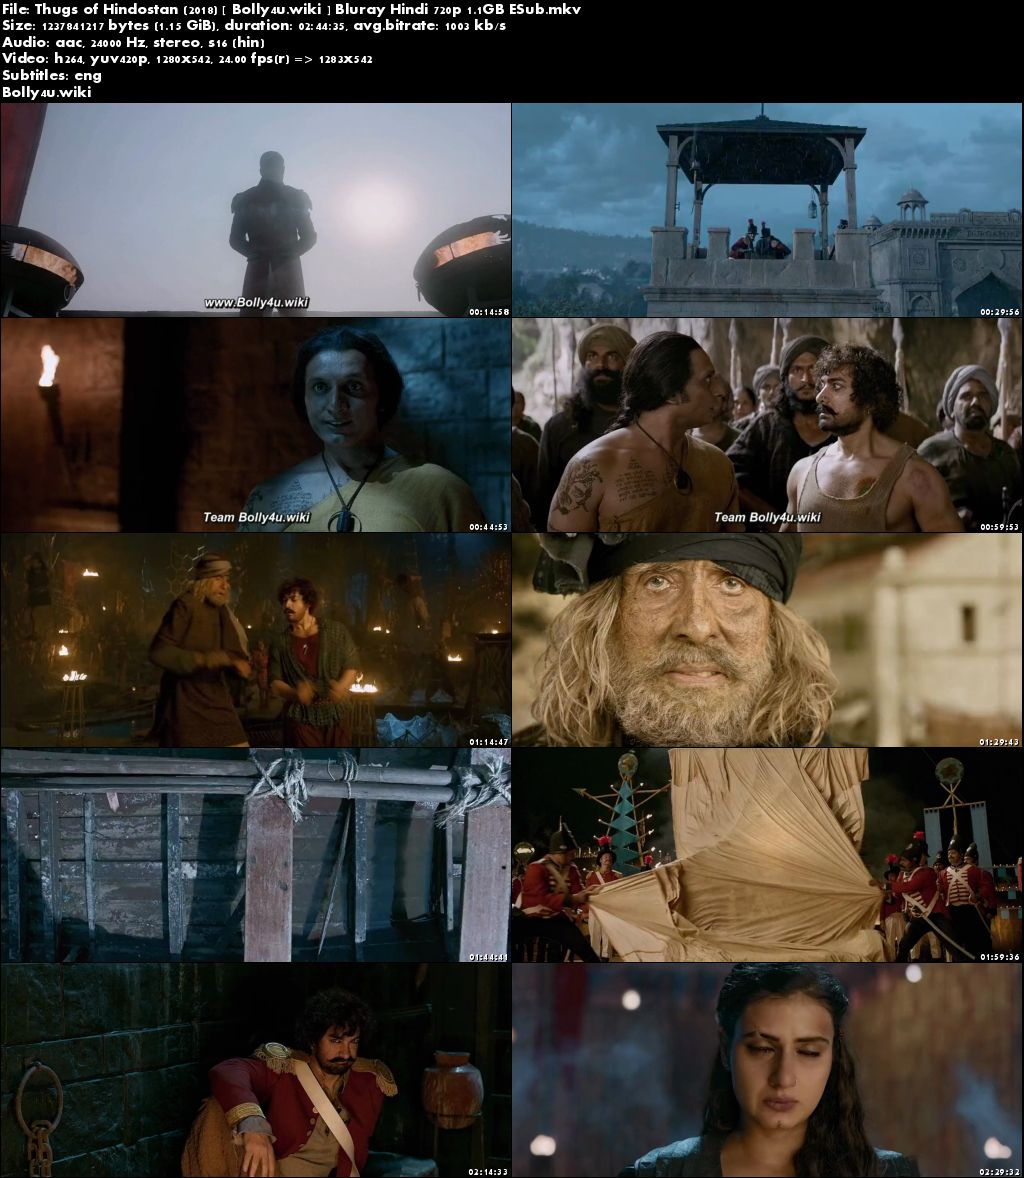 Thugs of Hindostan 2018 BluRay Full Hindi Movie Download 720p ESub